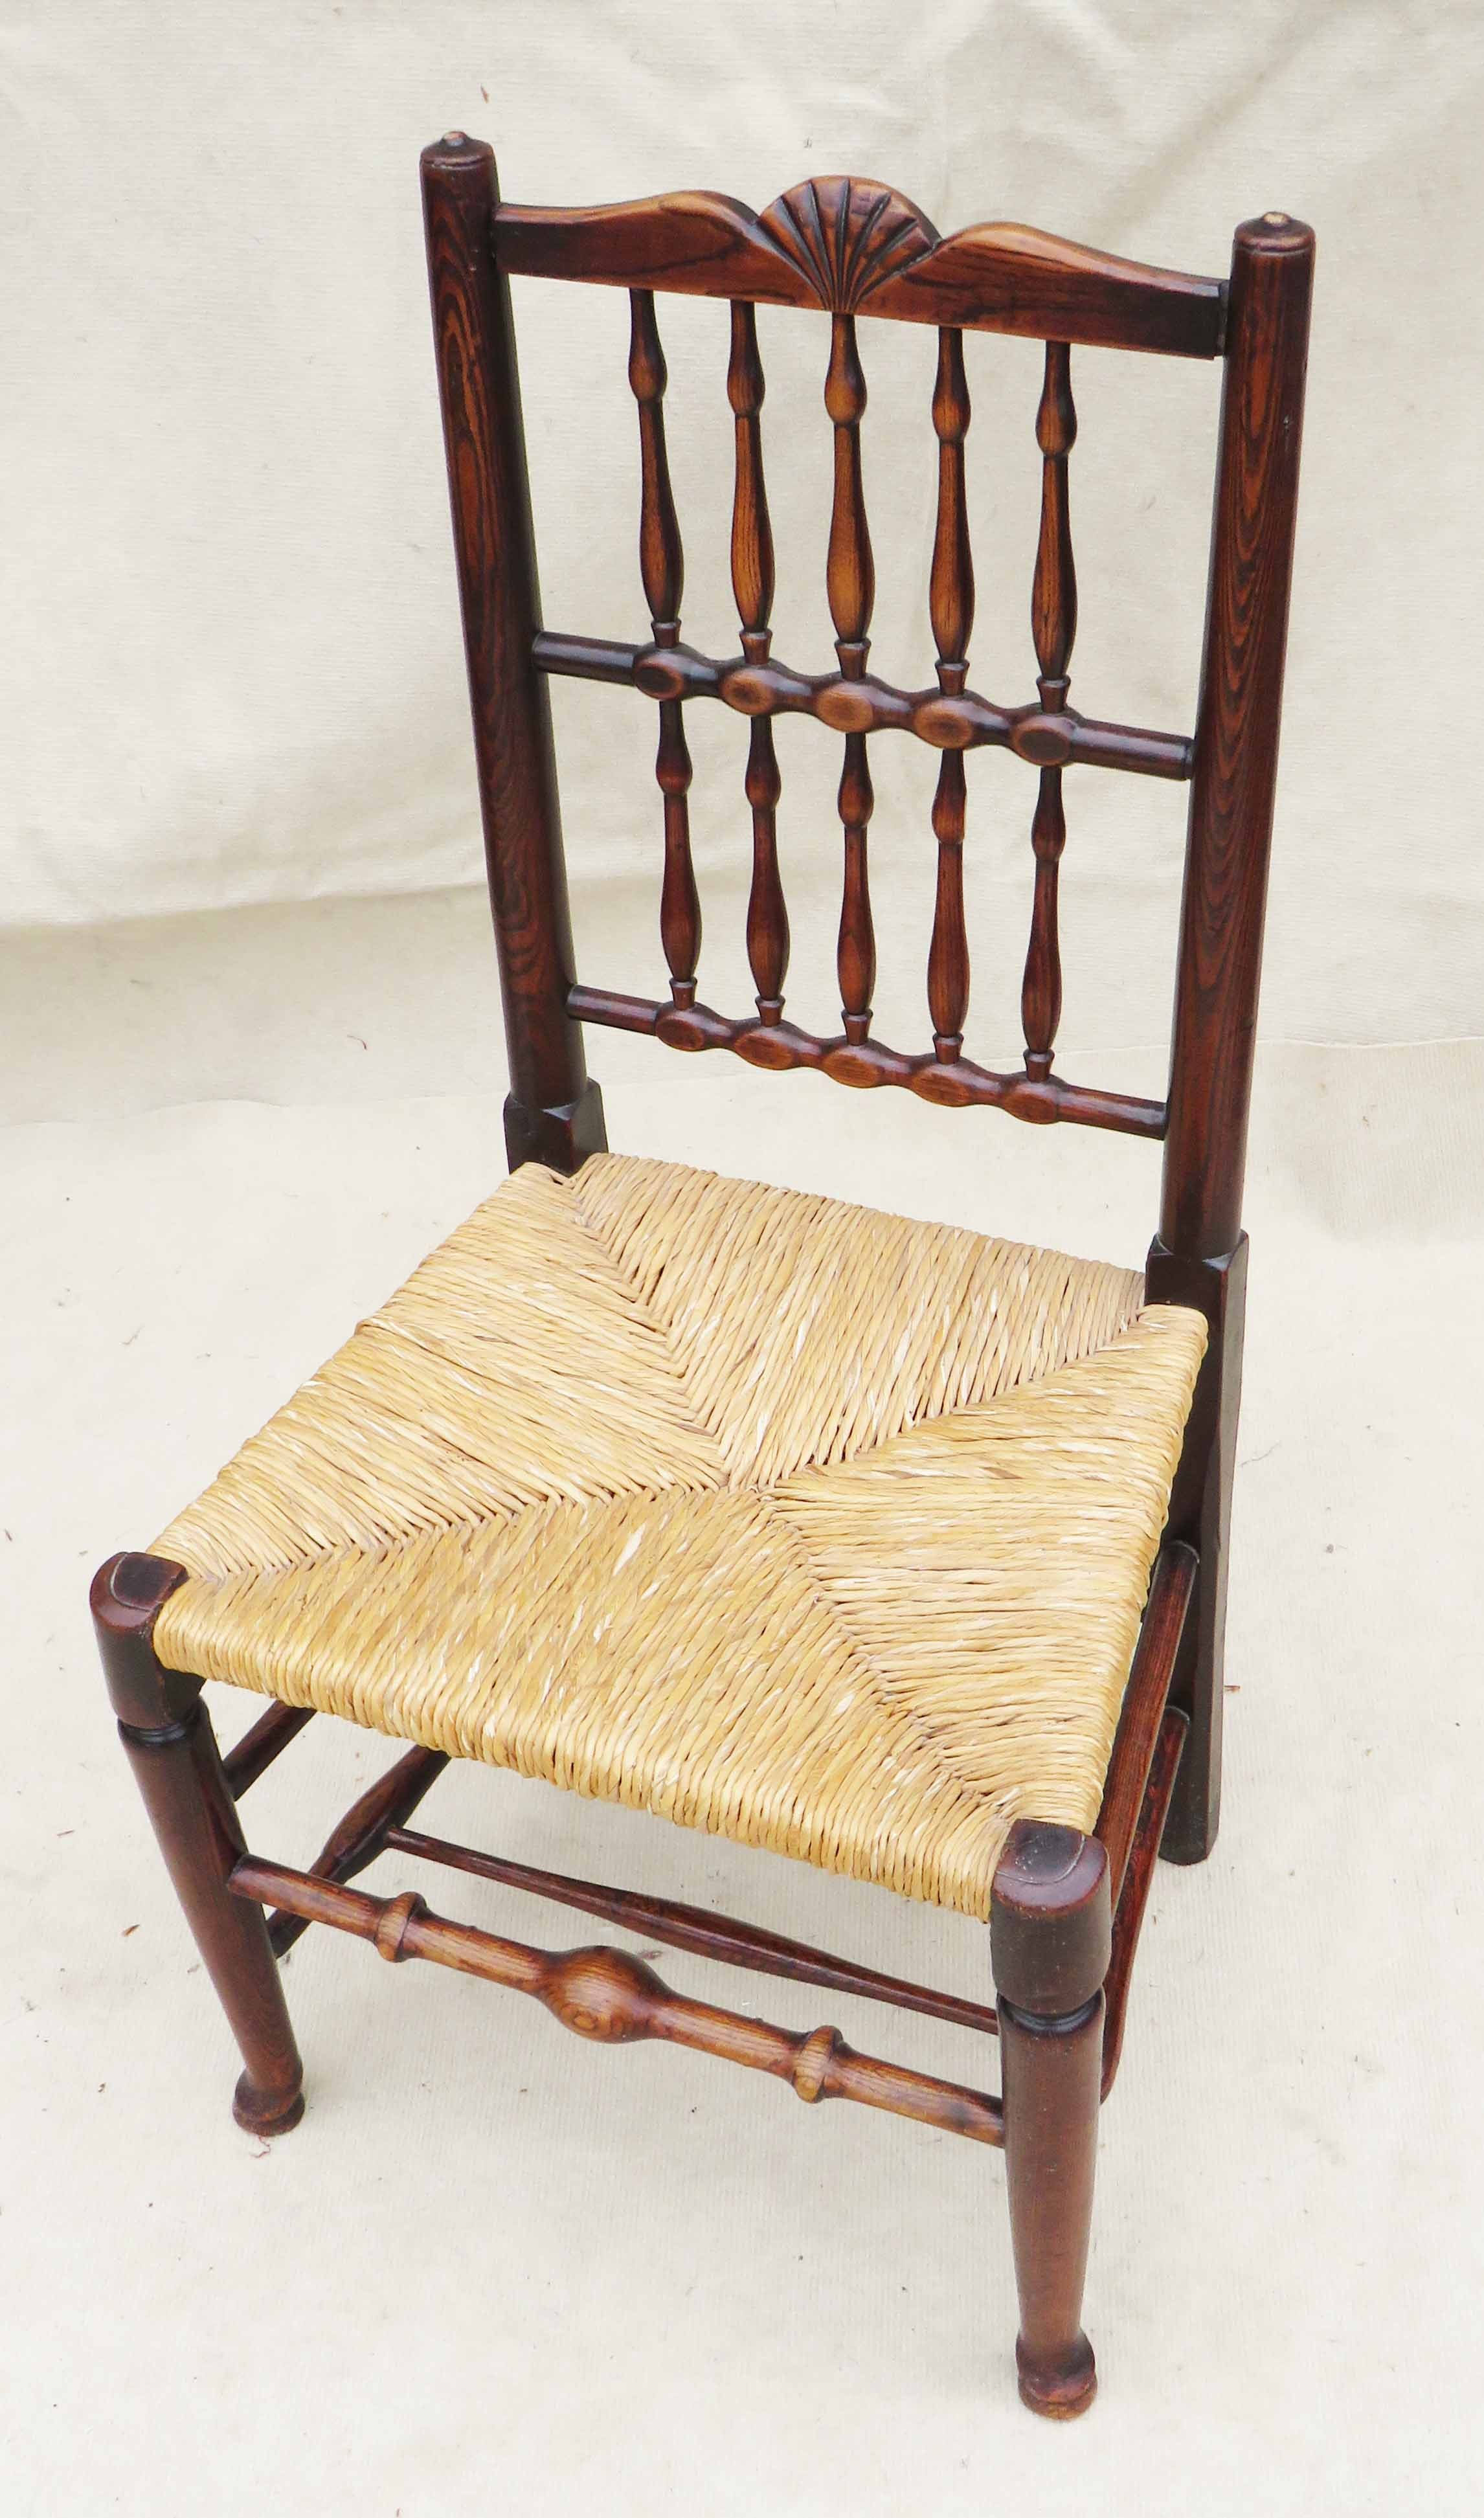 Matched Set Of 8 Spindle Back Dining Chairs, Early 19th Century - Image 7 of 12